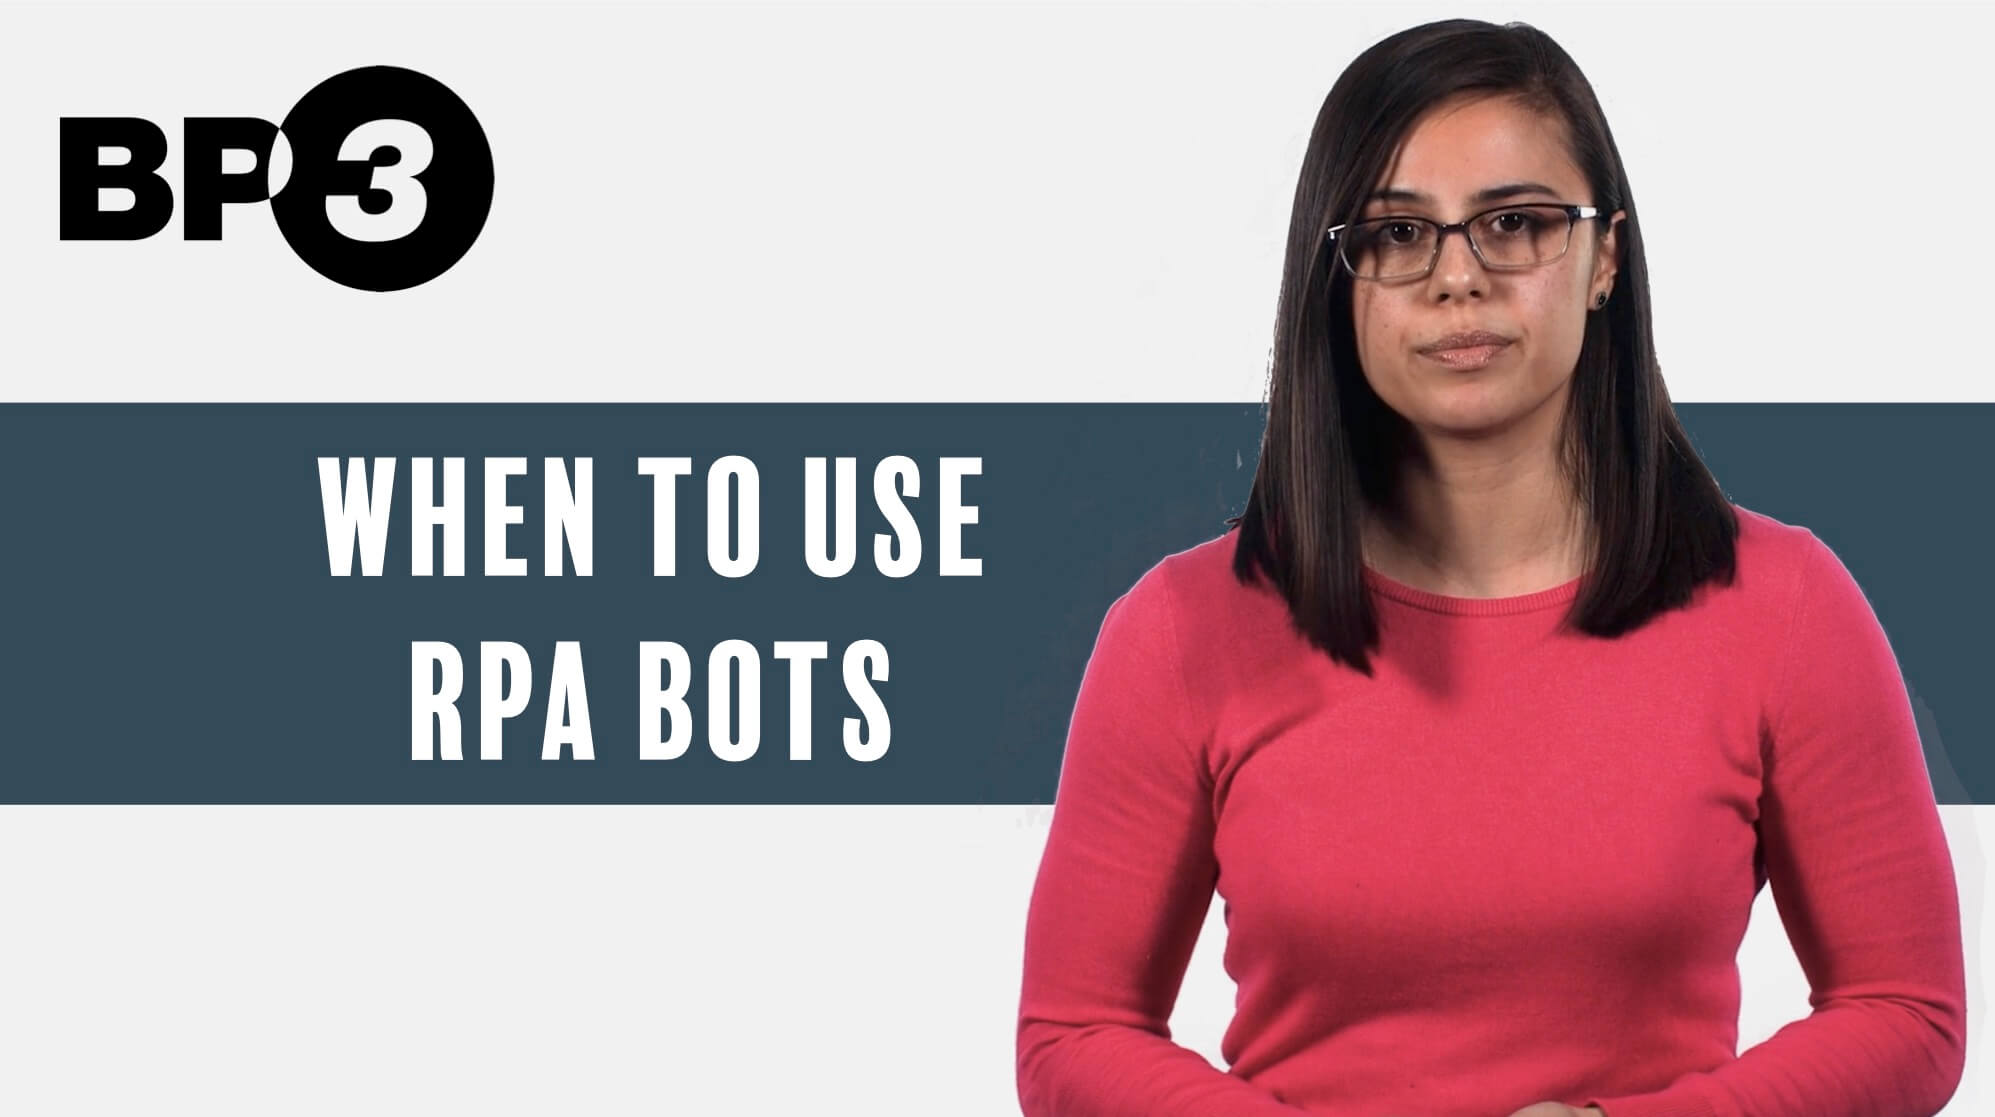 Sarah from our BP3 team gives some pointers about when to use RPA bots - mechanical or cognitive. With BP3, there's always a faster way!